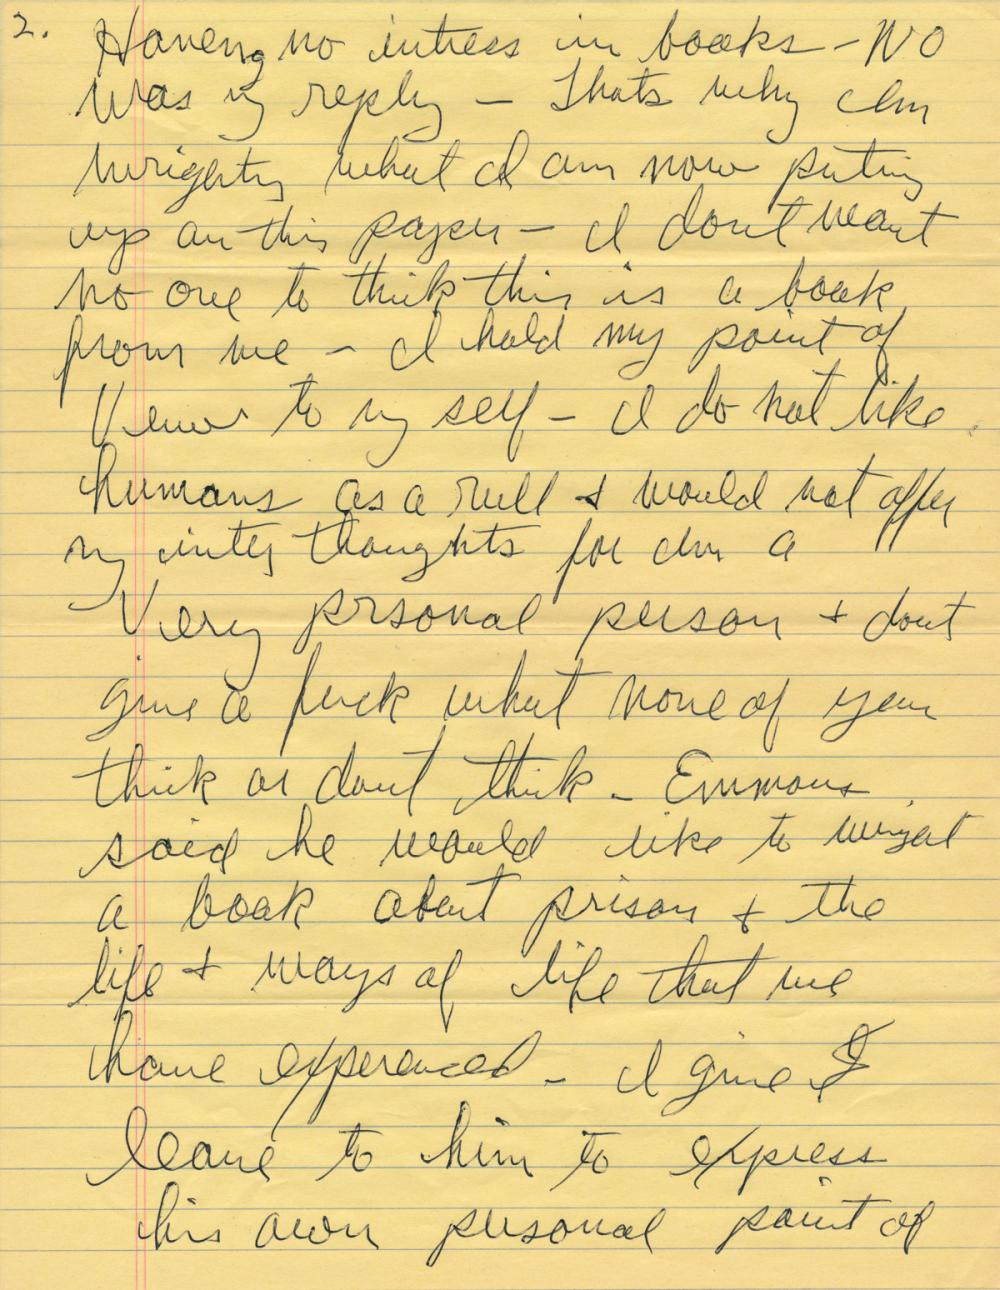 CHARLES MANSON COMMENTS ON HIS AUTOBIOGRAPHY